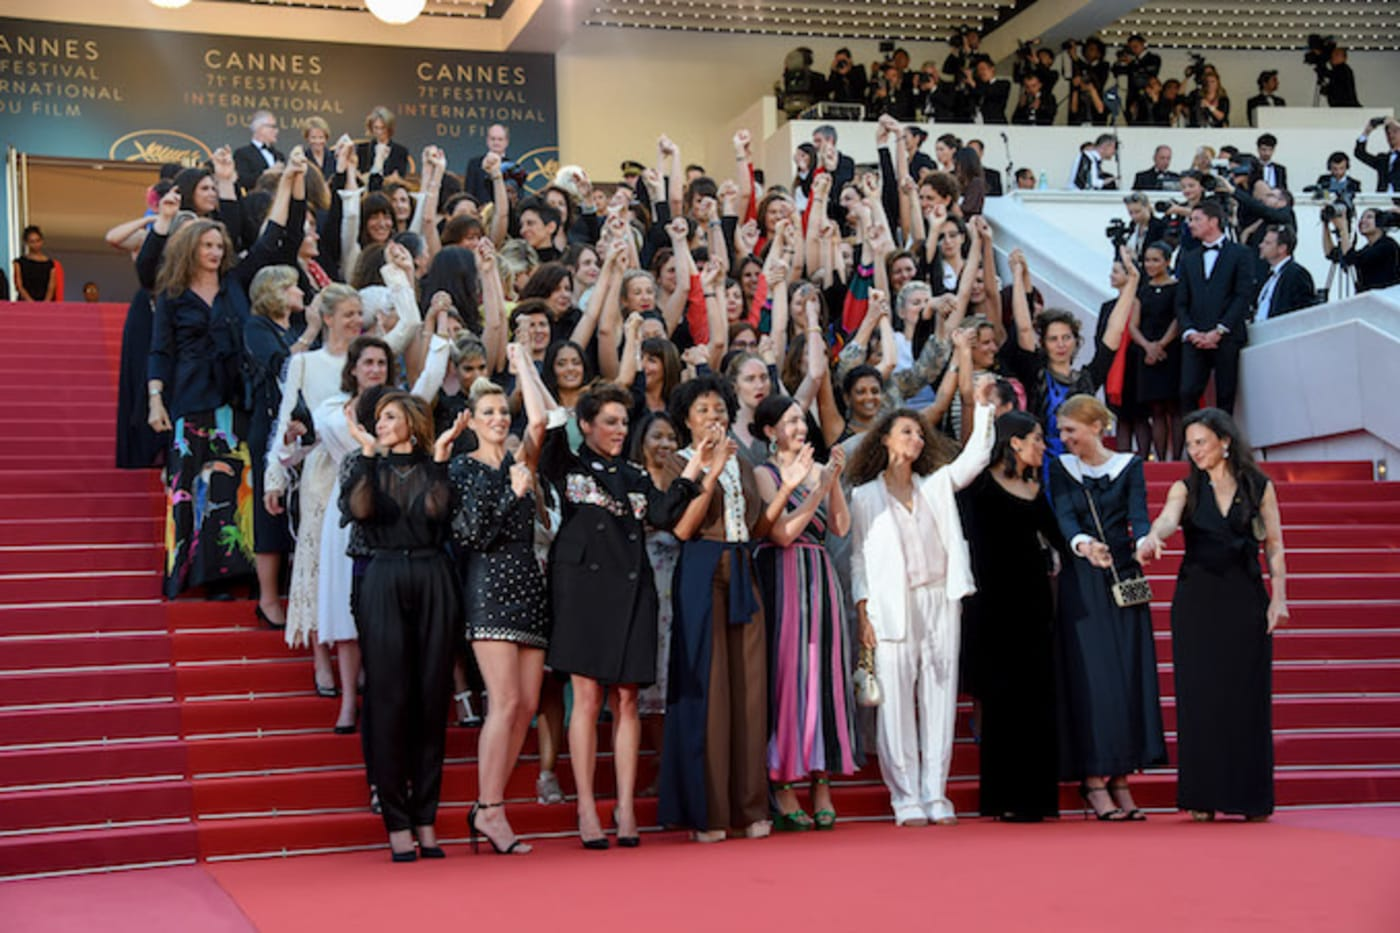 Protest at Cannes Film Festival